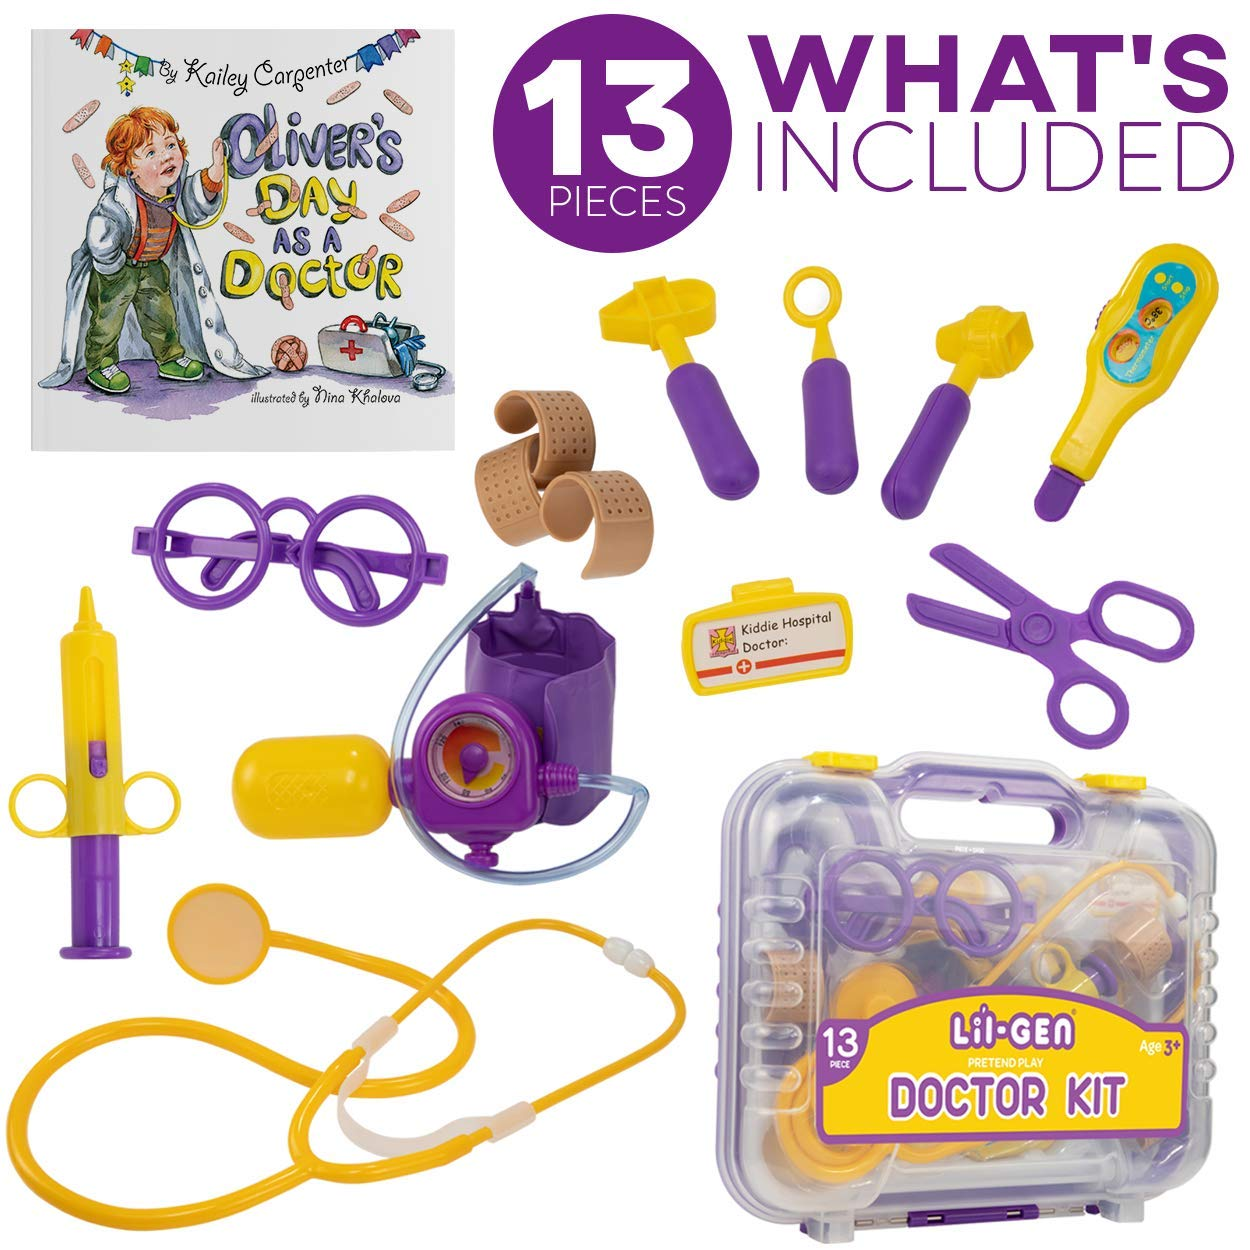 Li'l-Gen Pretend Play Doctor Kit for Kids, Pretend Play Toddler Toys 13 Pieces Kit Plus Oliver's Day as a Doctor Book by Li'l-Gen (Image #4)